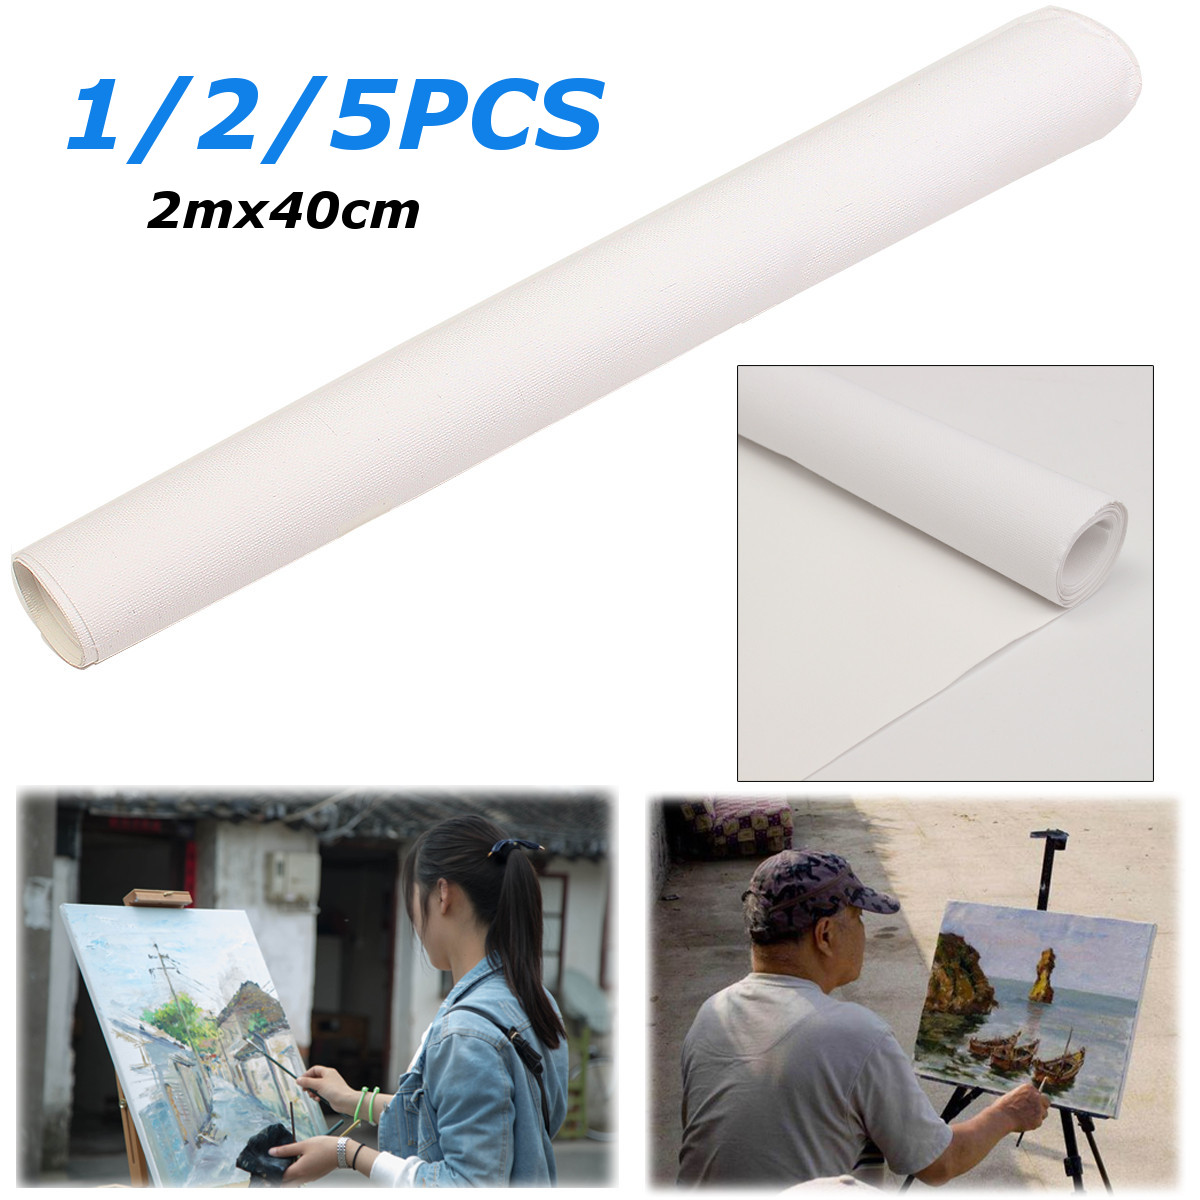 200x40cm White Blank Canvas Fabric Artist Canvas Roll Cotton Canvas For Watercolors Acrylic Oil Painting Art Painting Supplies200x40cm White Blank Canvas Fabric Artist Canvas Roll Cotton Canvas For Watercolors Acrylic Oil Painting Art Painting Supplies